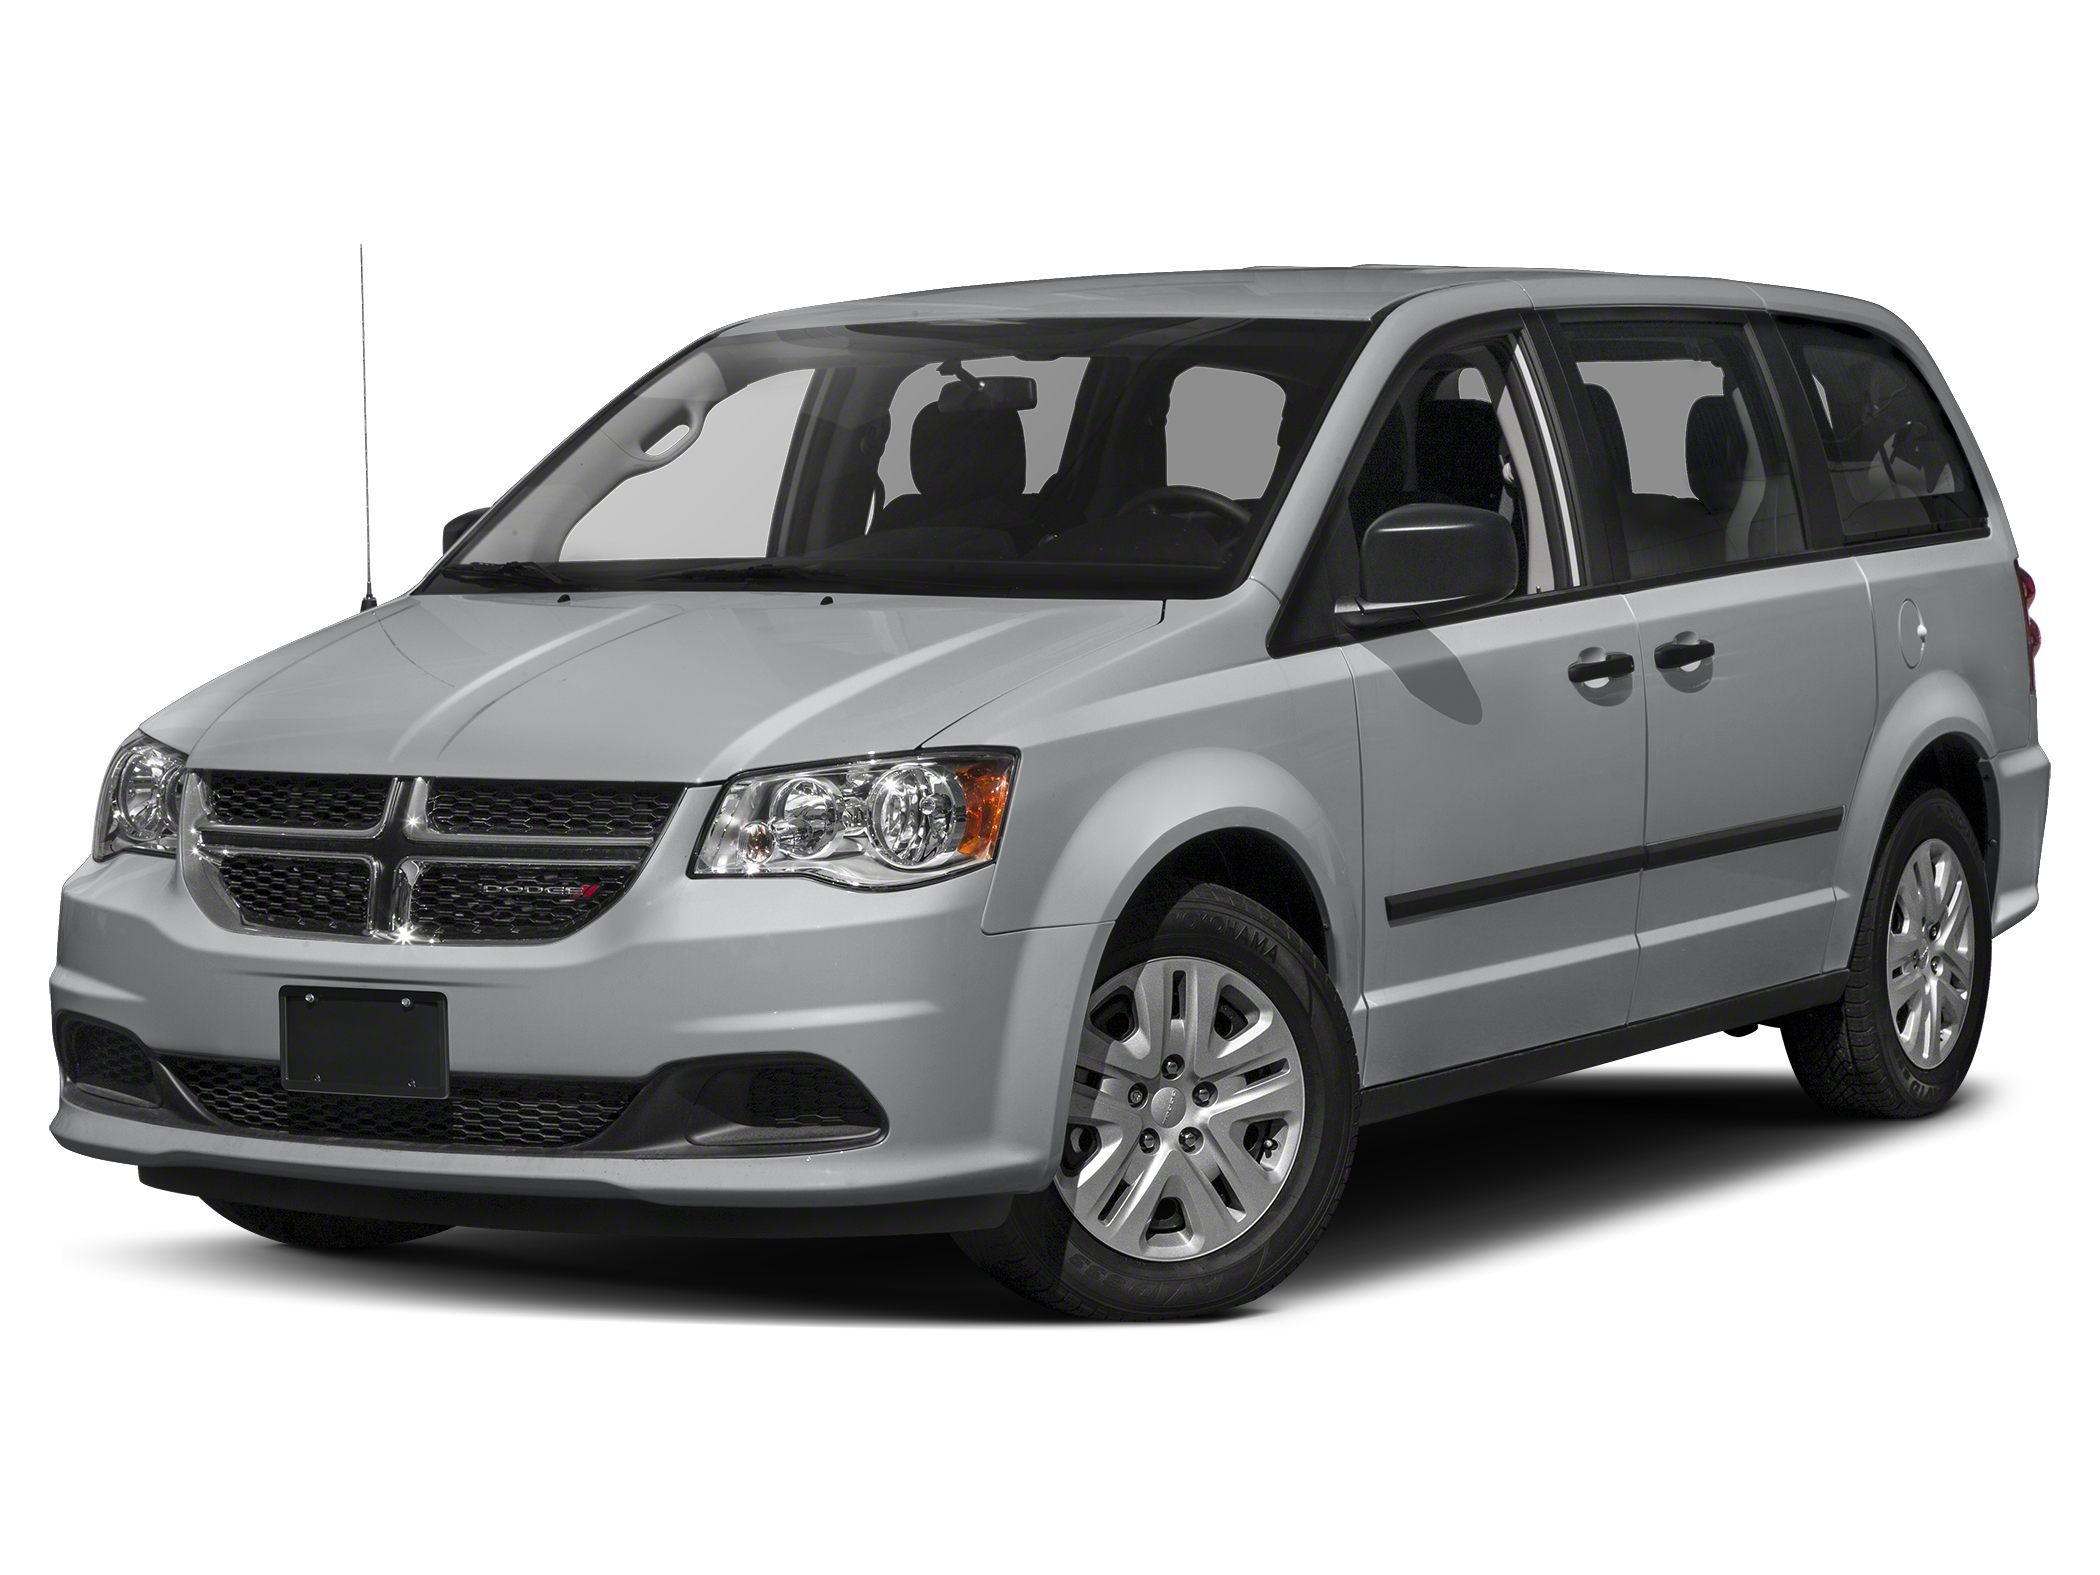 2019 Dodge Grand Caravan Minivan/Van